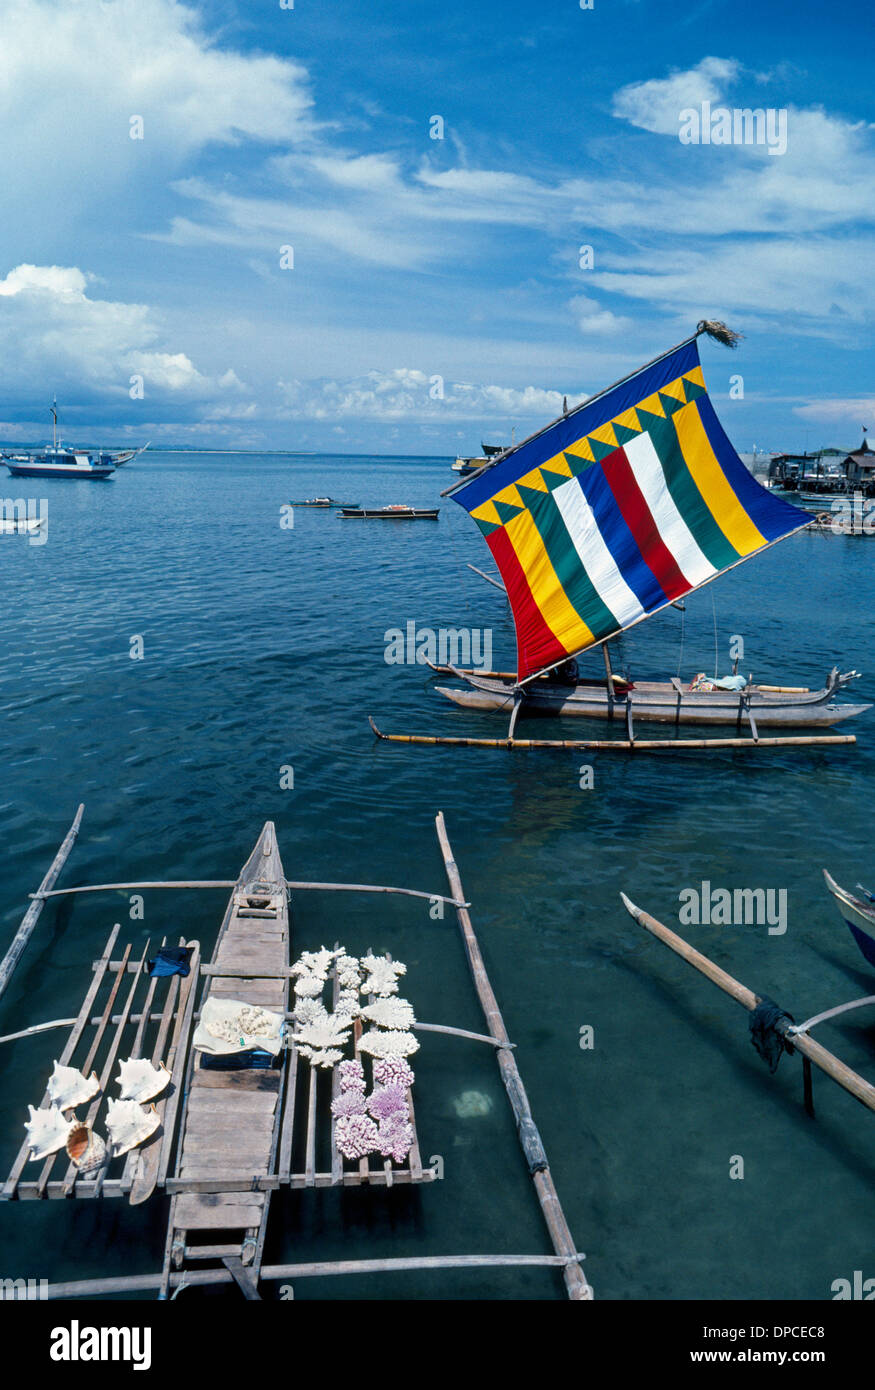 Colorful sails distinguish traditional Muslim outrigger boats, called vintas, in the southern Sulu Sea area of the Philippines in Southeast Asia. - Stock Image